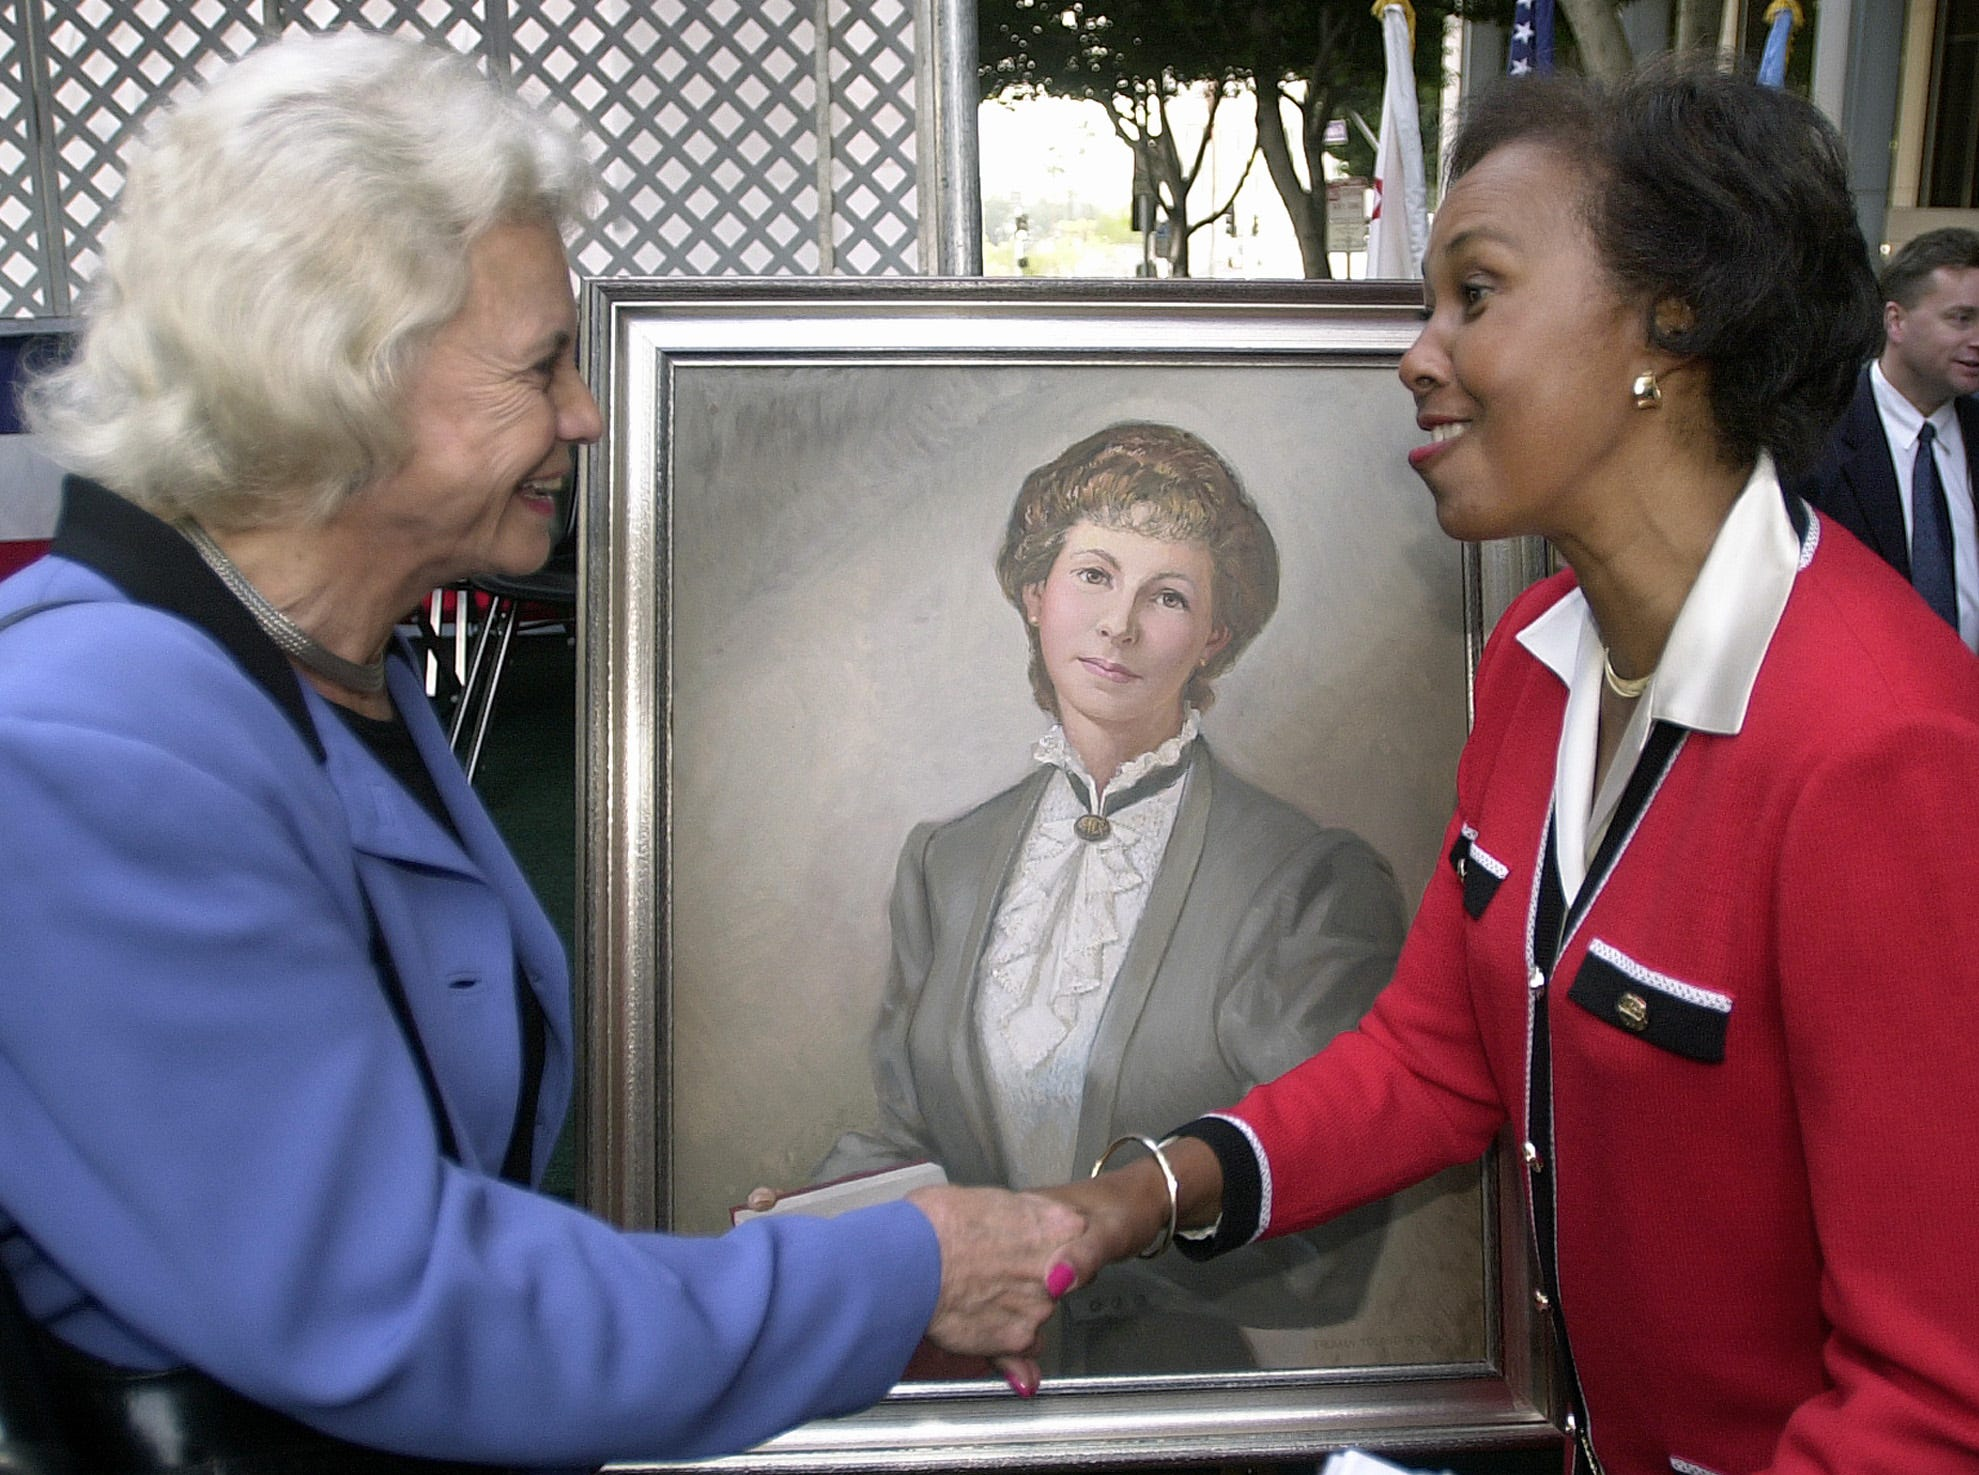 Supreme Court Justice Sandra Day O'Connor shakes hands with Los Angeles Supervisor Yvonne Braithwaite Burke as they pay tribute to law pioneer, Clara Shortridge Foltz, seen in the painting, Friday, Feb. 8, 2002, in downtown Los Angeles. The Los Angeles Criminal Courts building was renamed to the Clara Shortridge Folz Criminal Justice Center to commemorate California's first female lawyer.